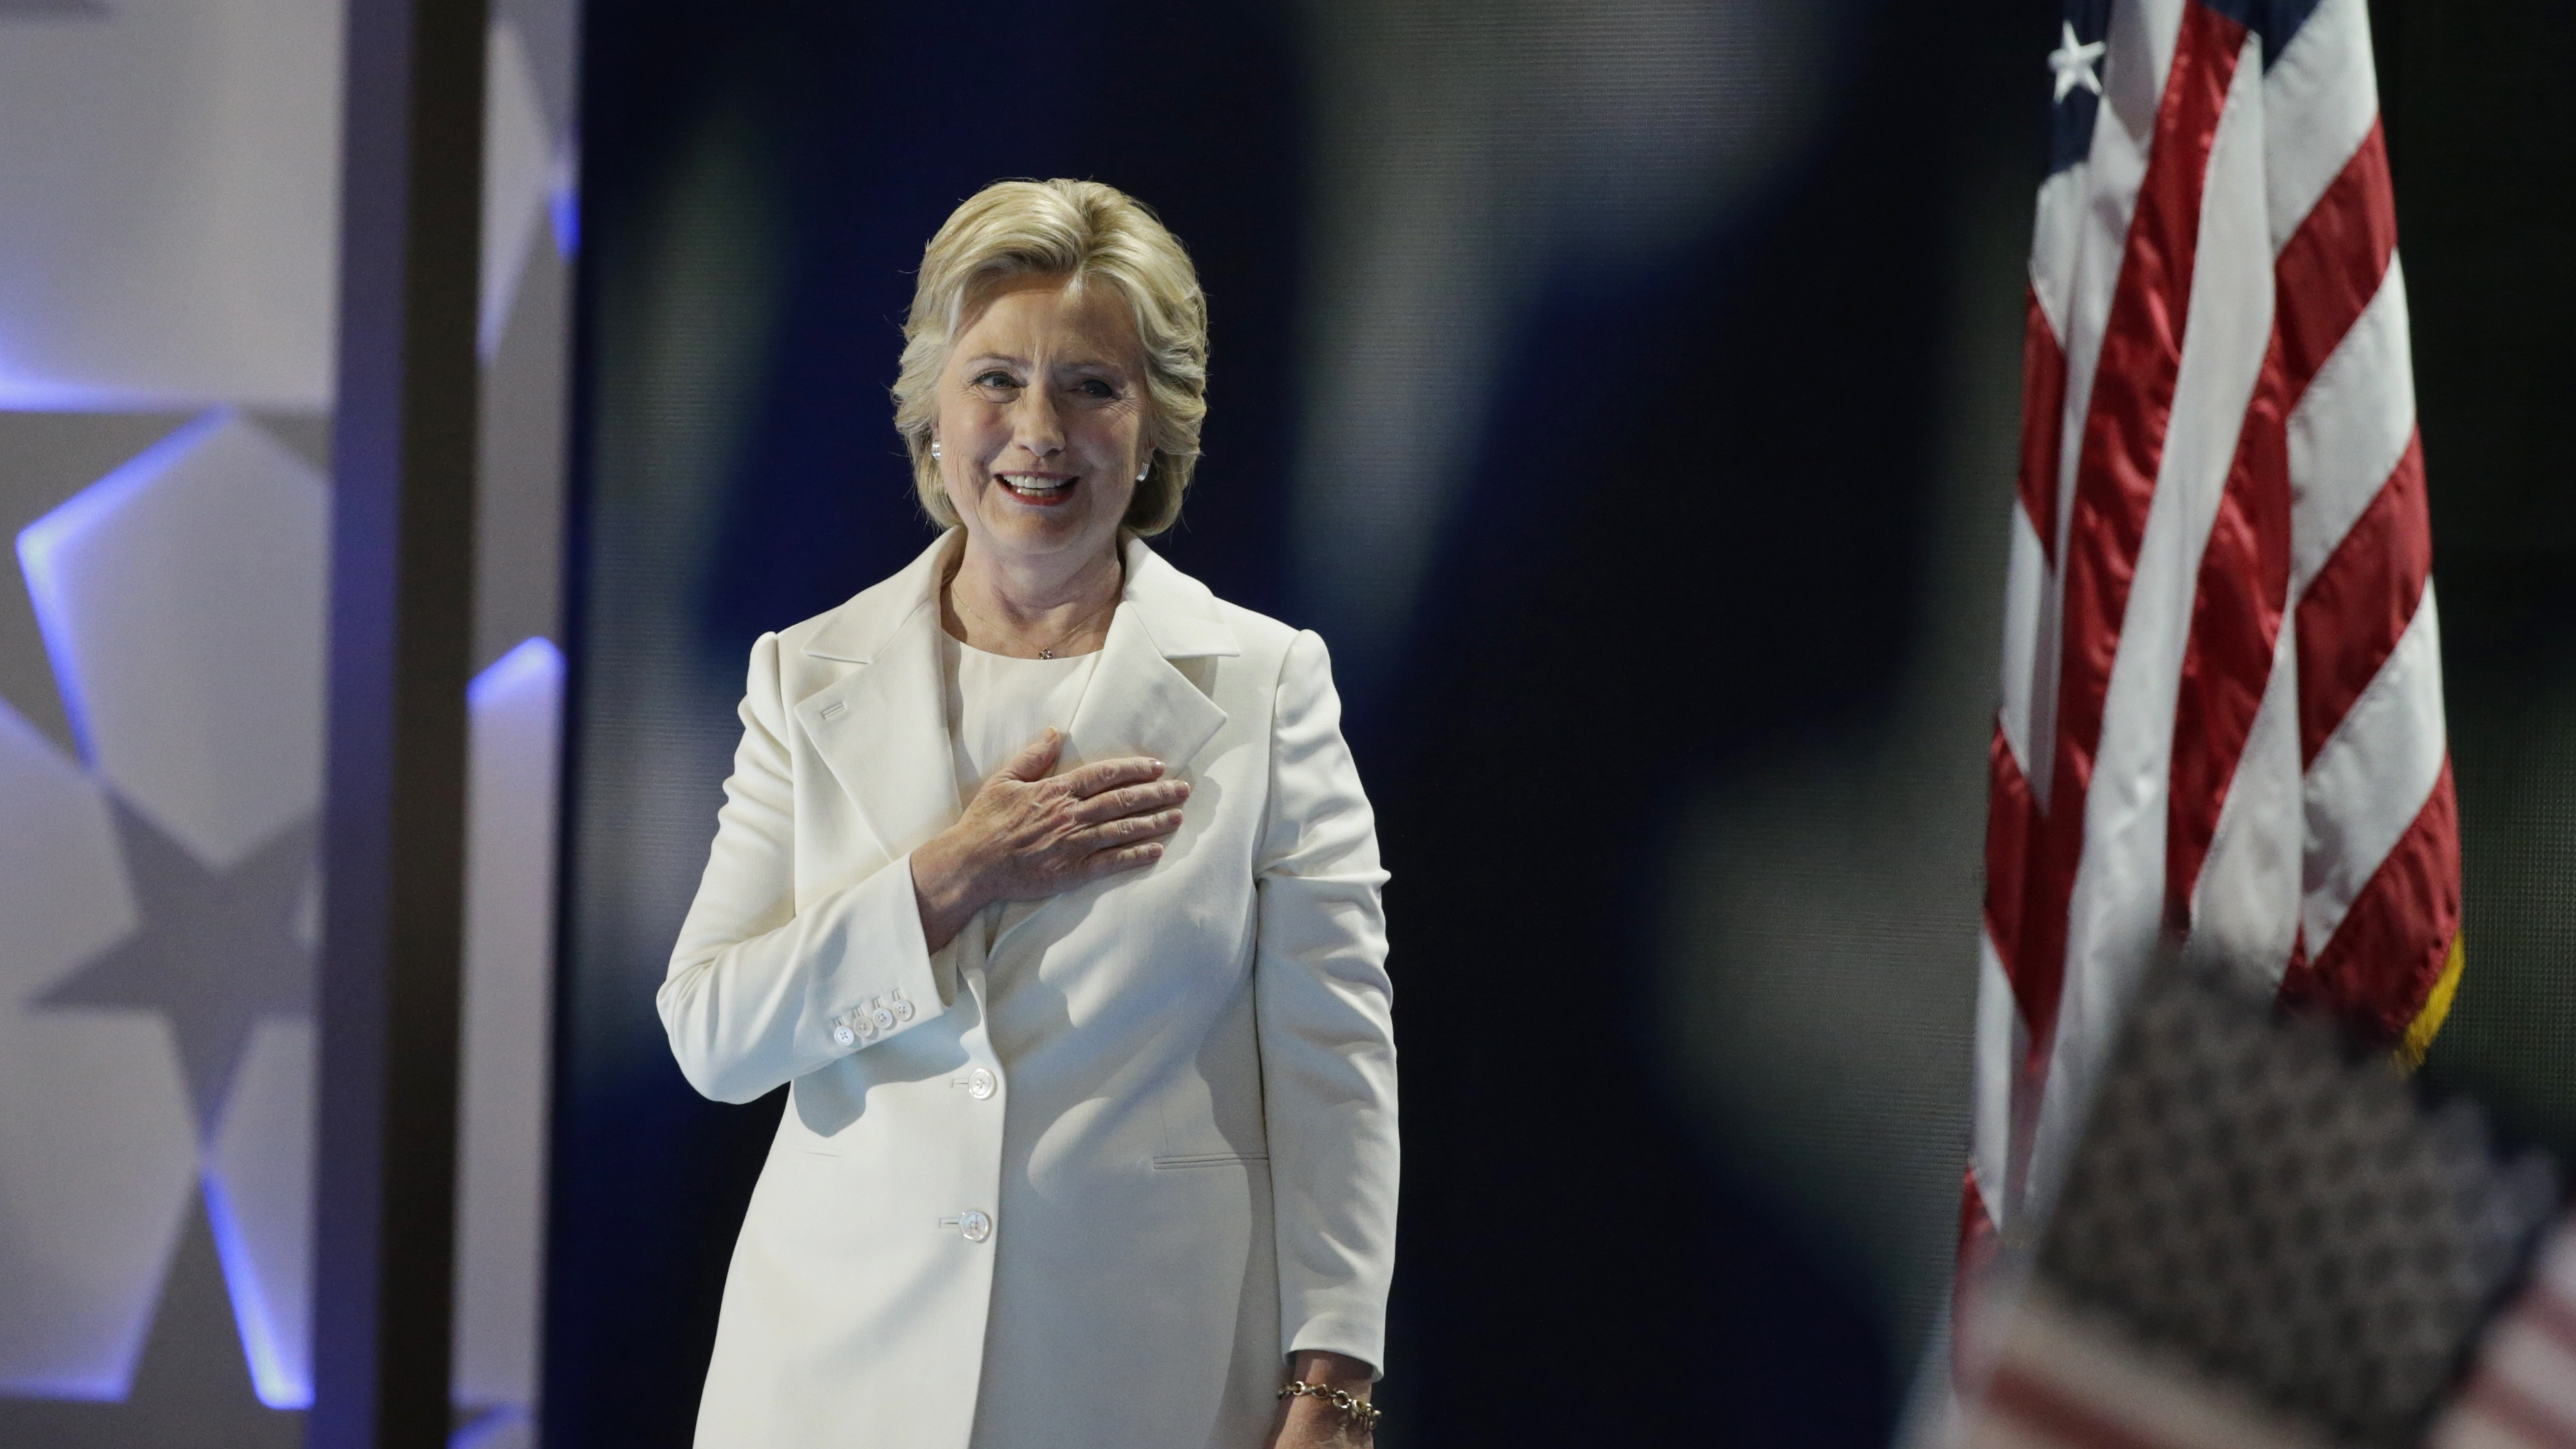 Democratic presidential nominee Hillary Clinton places her hand on her heart as she arrives onstage to accept the nomination on the fourth and final night at the Democratic National Convention in Philadelphia, Pennsylvania, U.S. July 28, 2016. REUTERS/Gary Cameron TPX IMAGES OF THE DAY